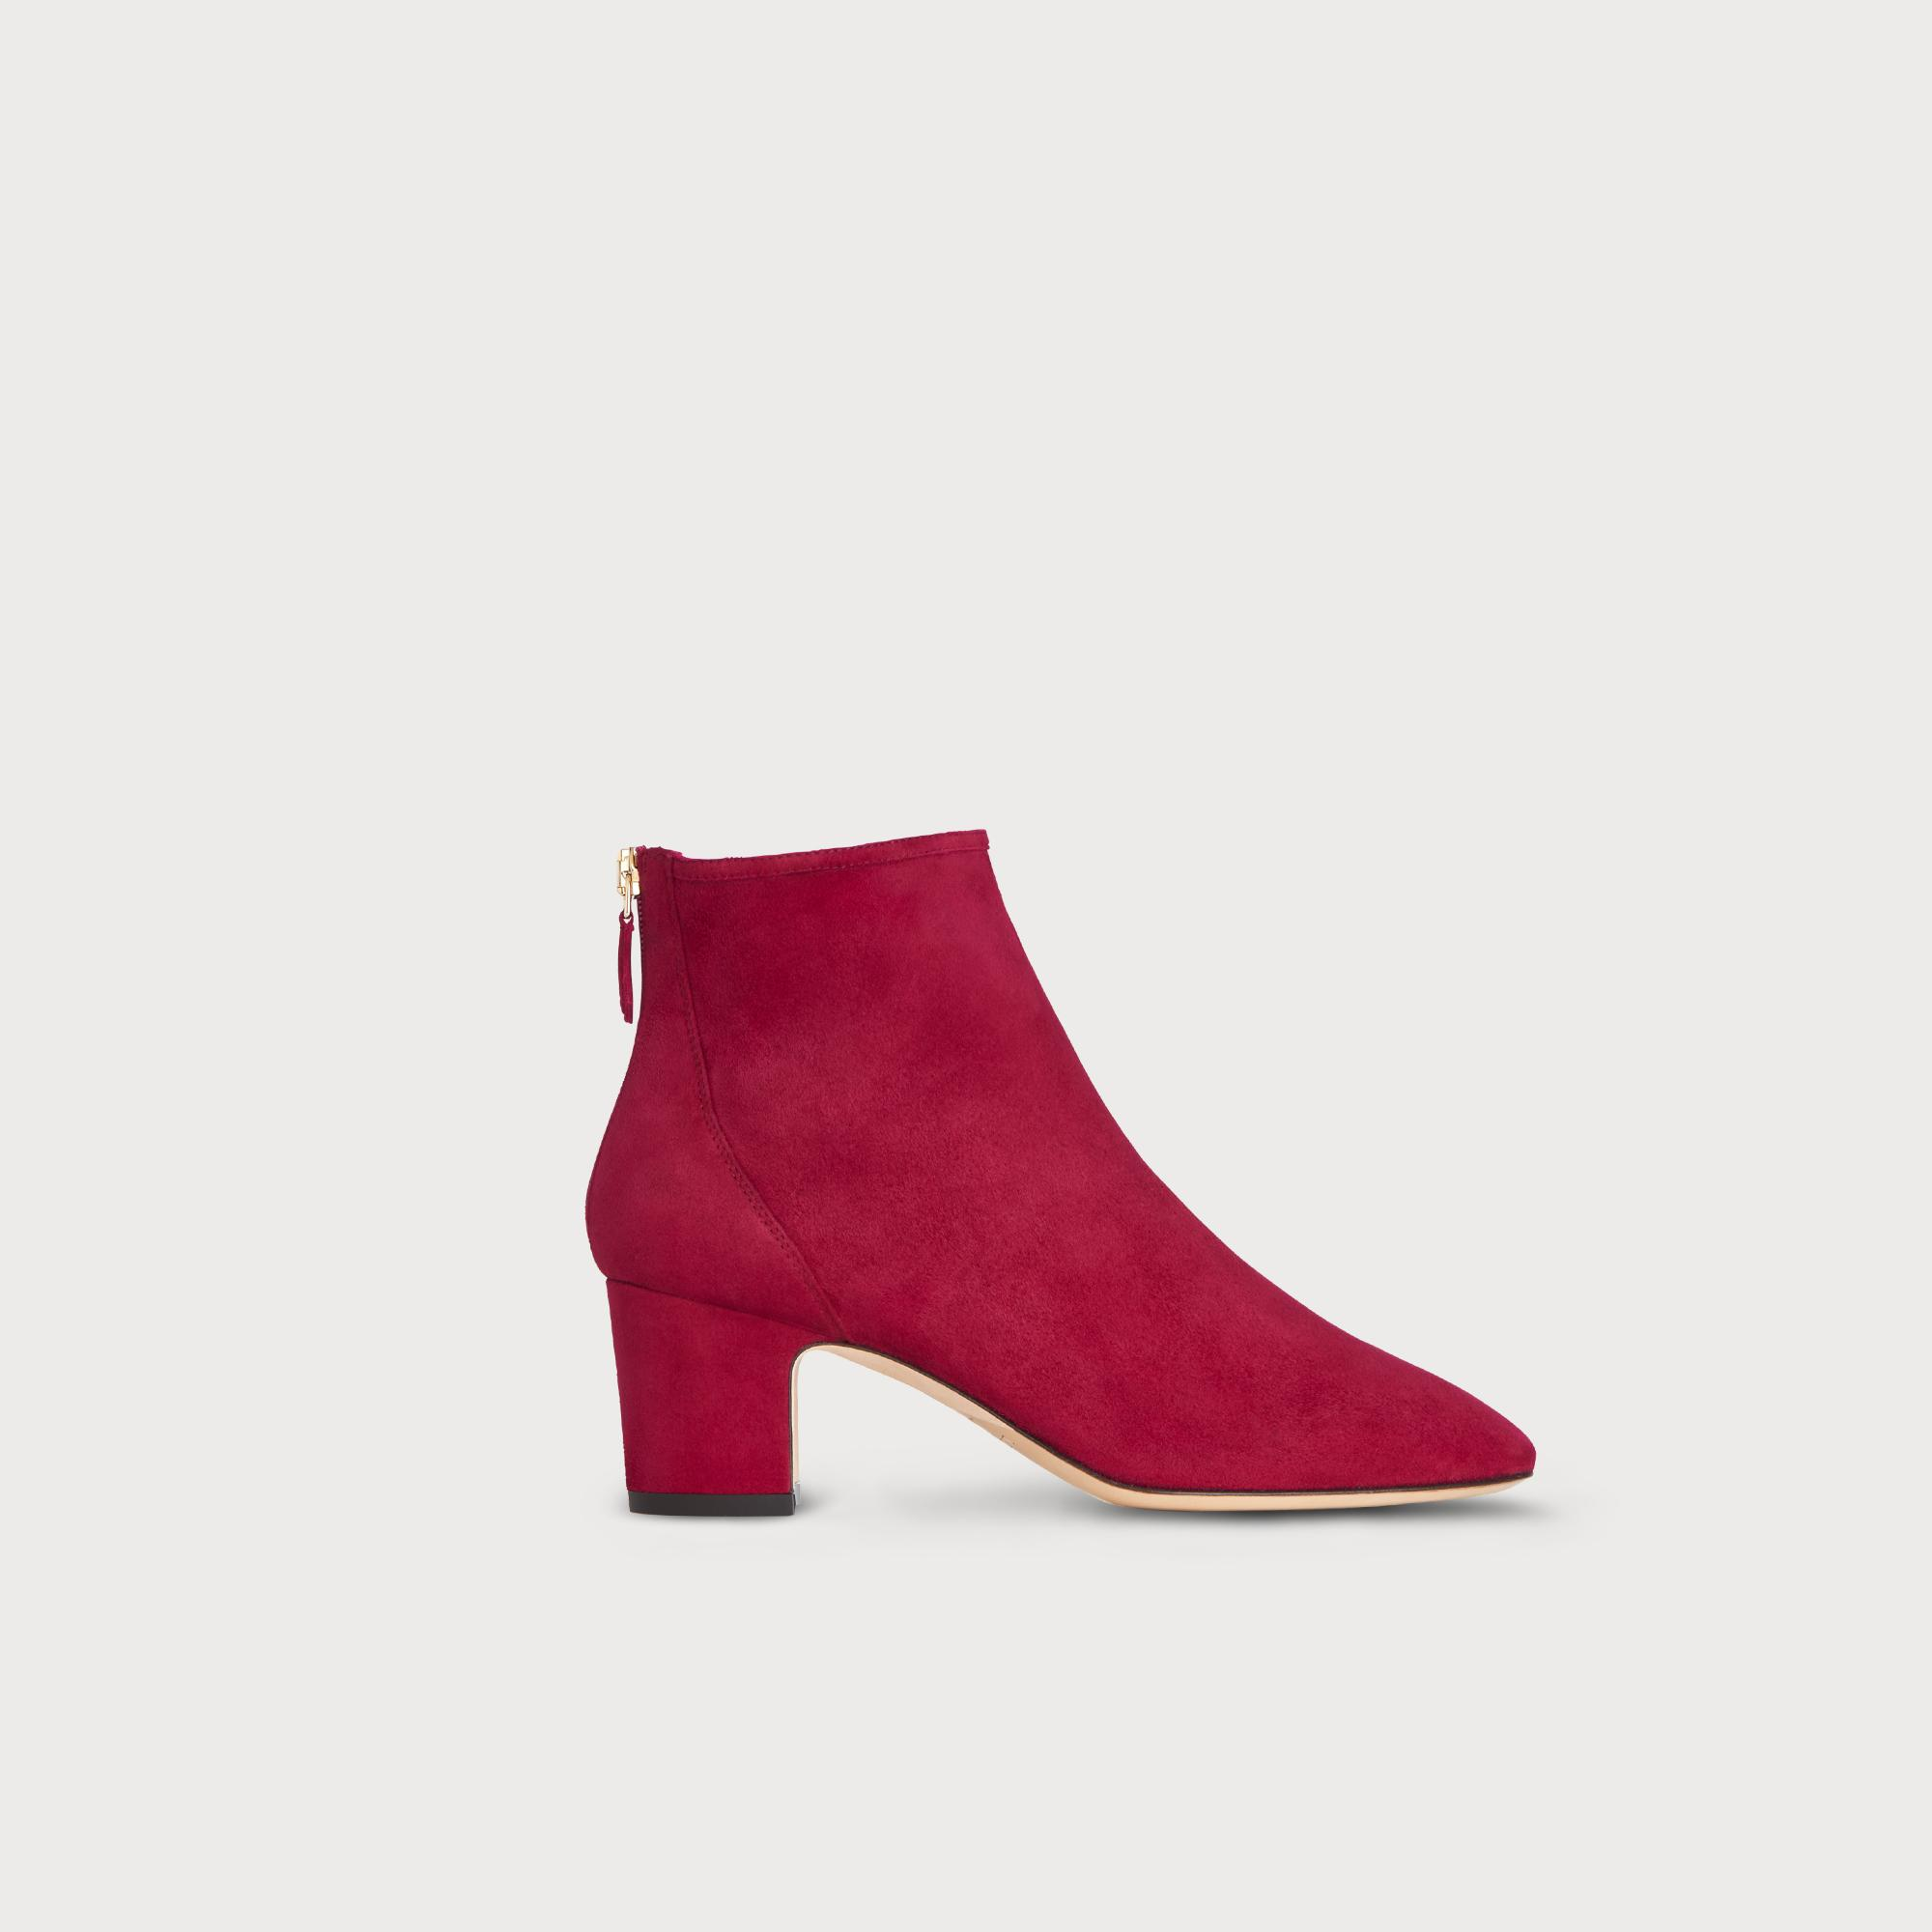 Alyss Poppy Suede Ankle Boots